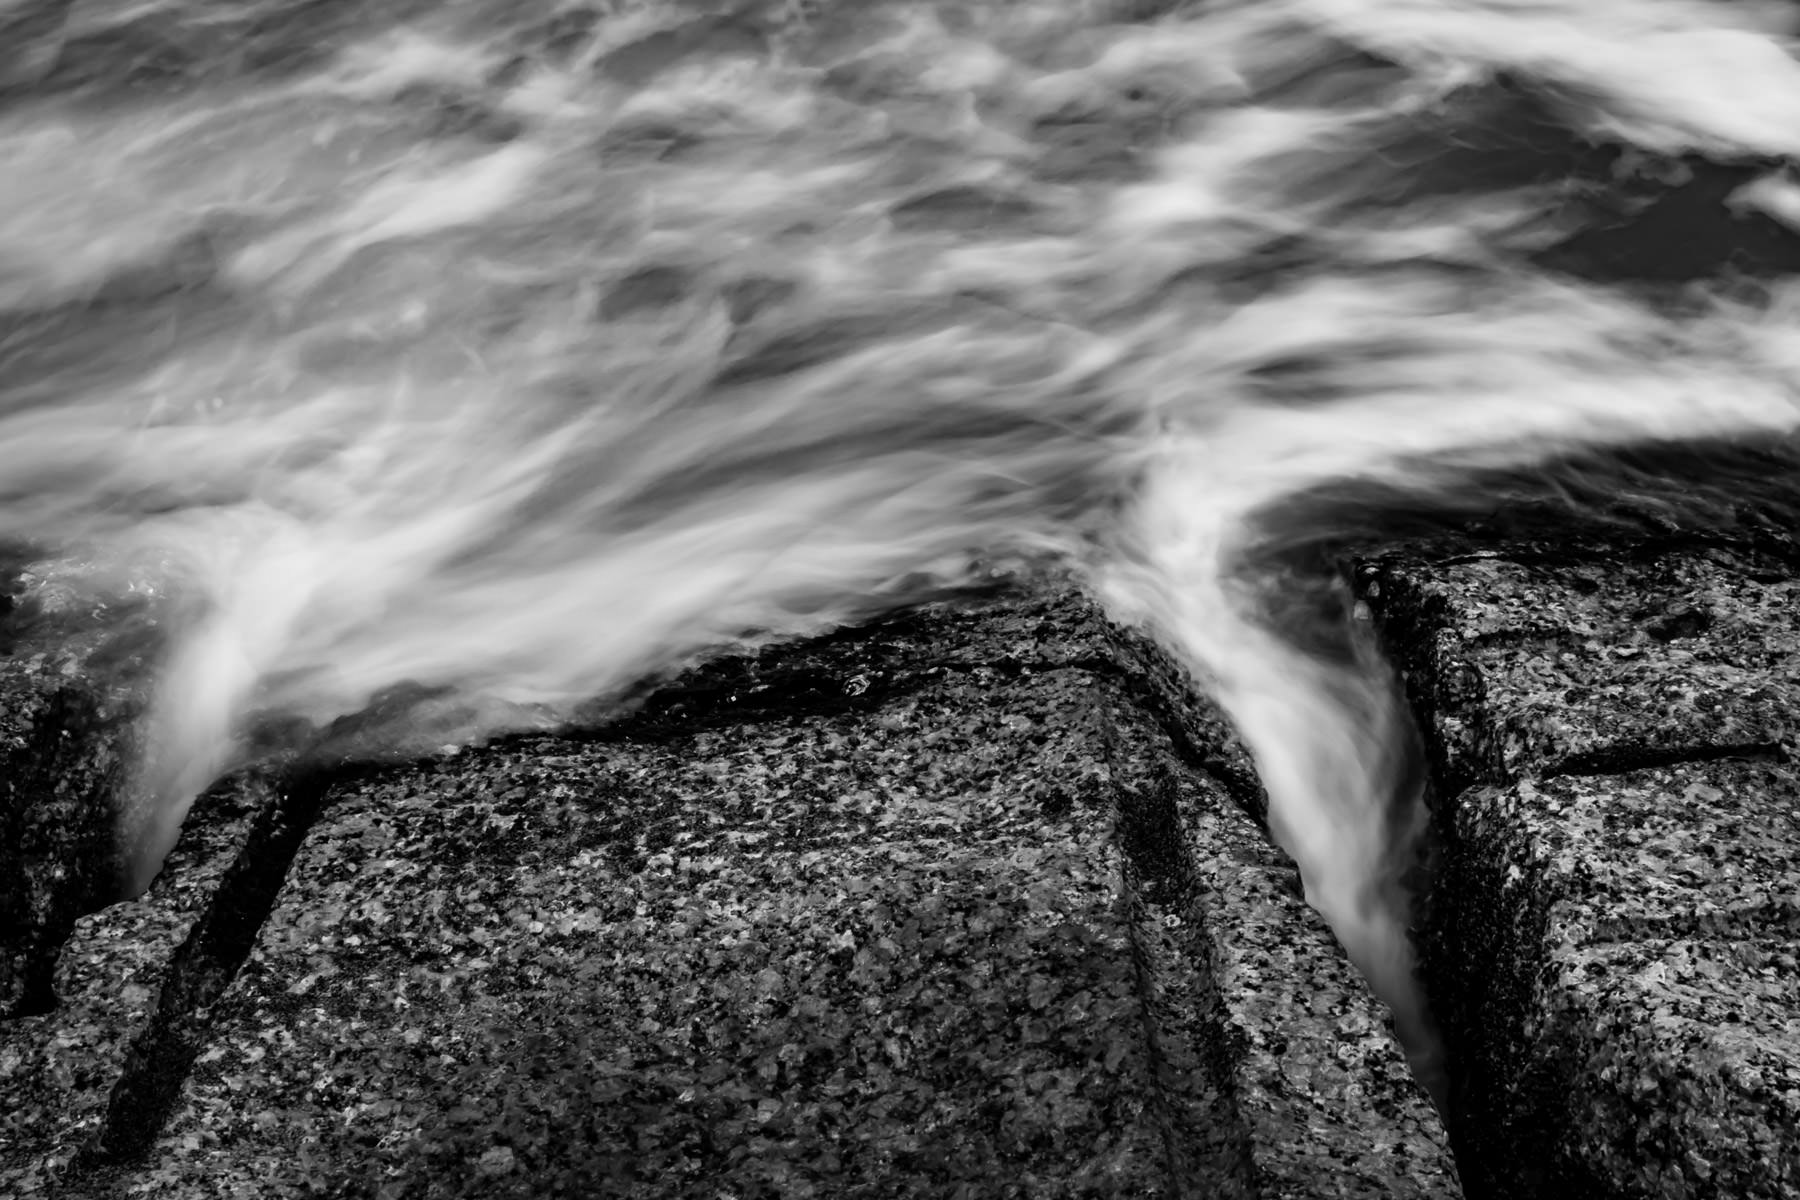 Flowing water in this long exposure shot resembles wisps of smoke curling around granite blocks making up a jetty or groyne on the Galveston, Texas, beach.